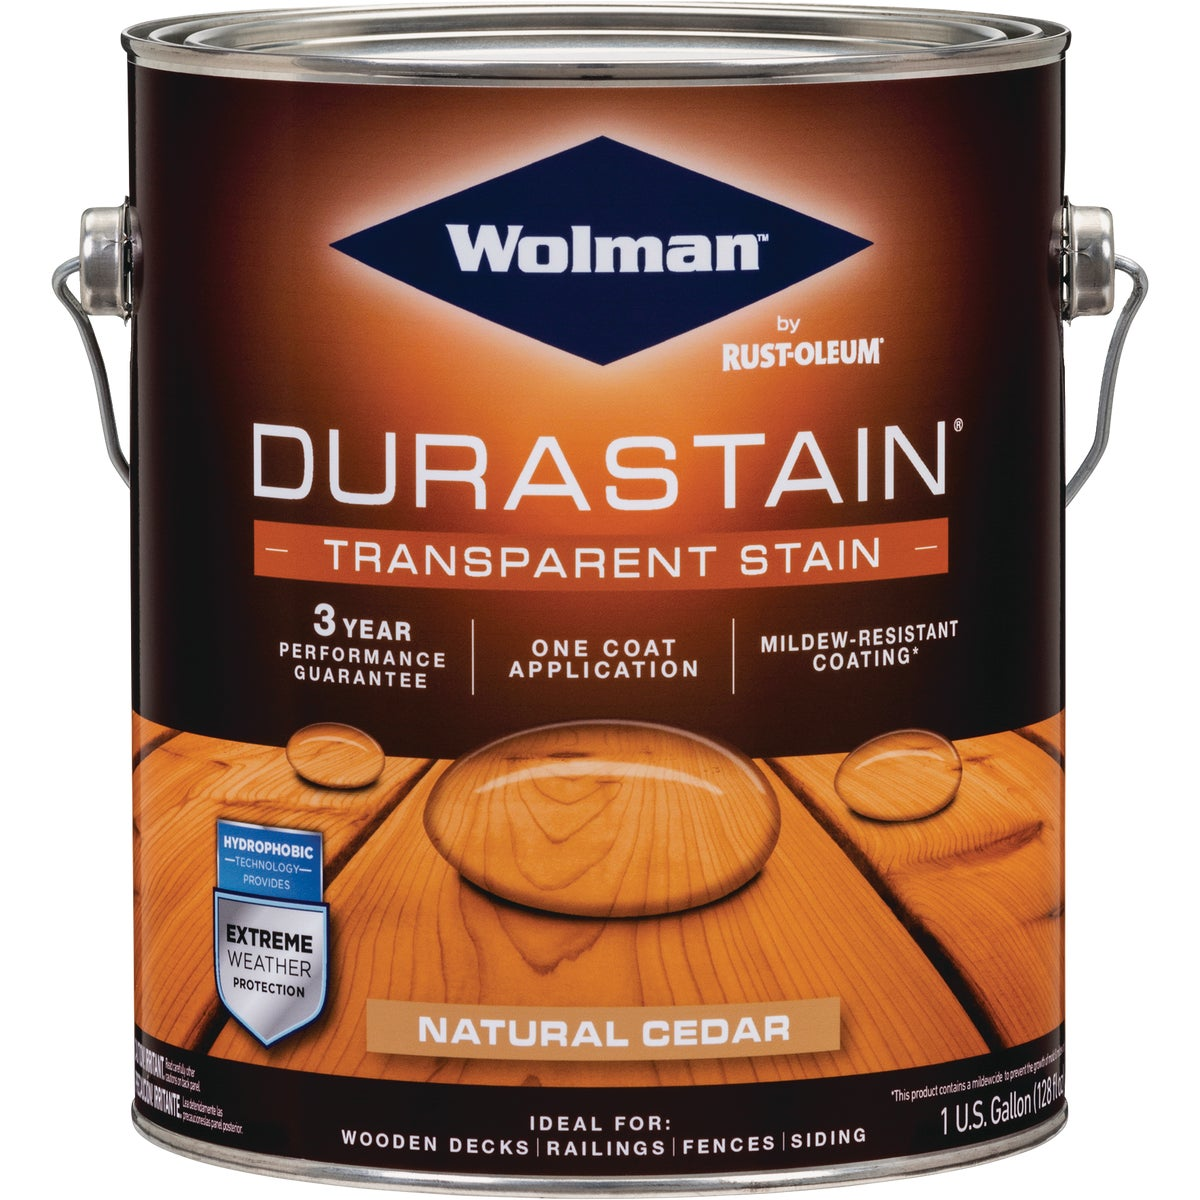 WOLMAN NATURAL RAIN COAT - 12356 by Rustoleum